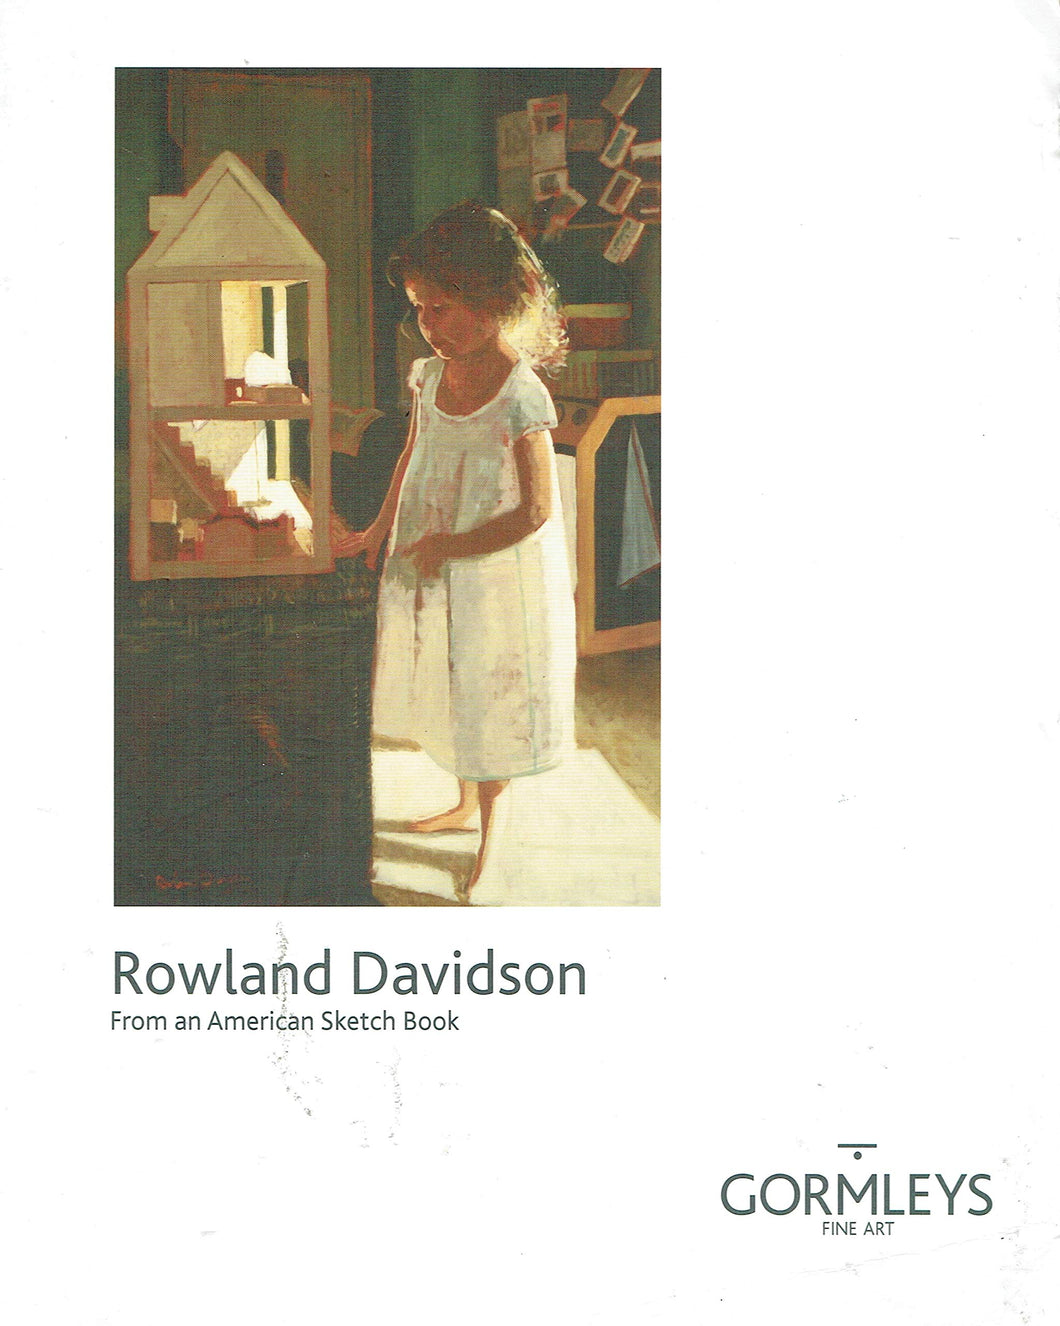 Rowland Davidson: From an American Sketch Book